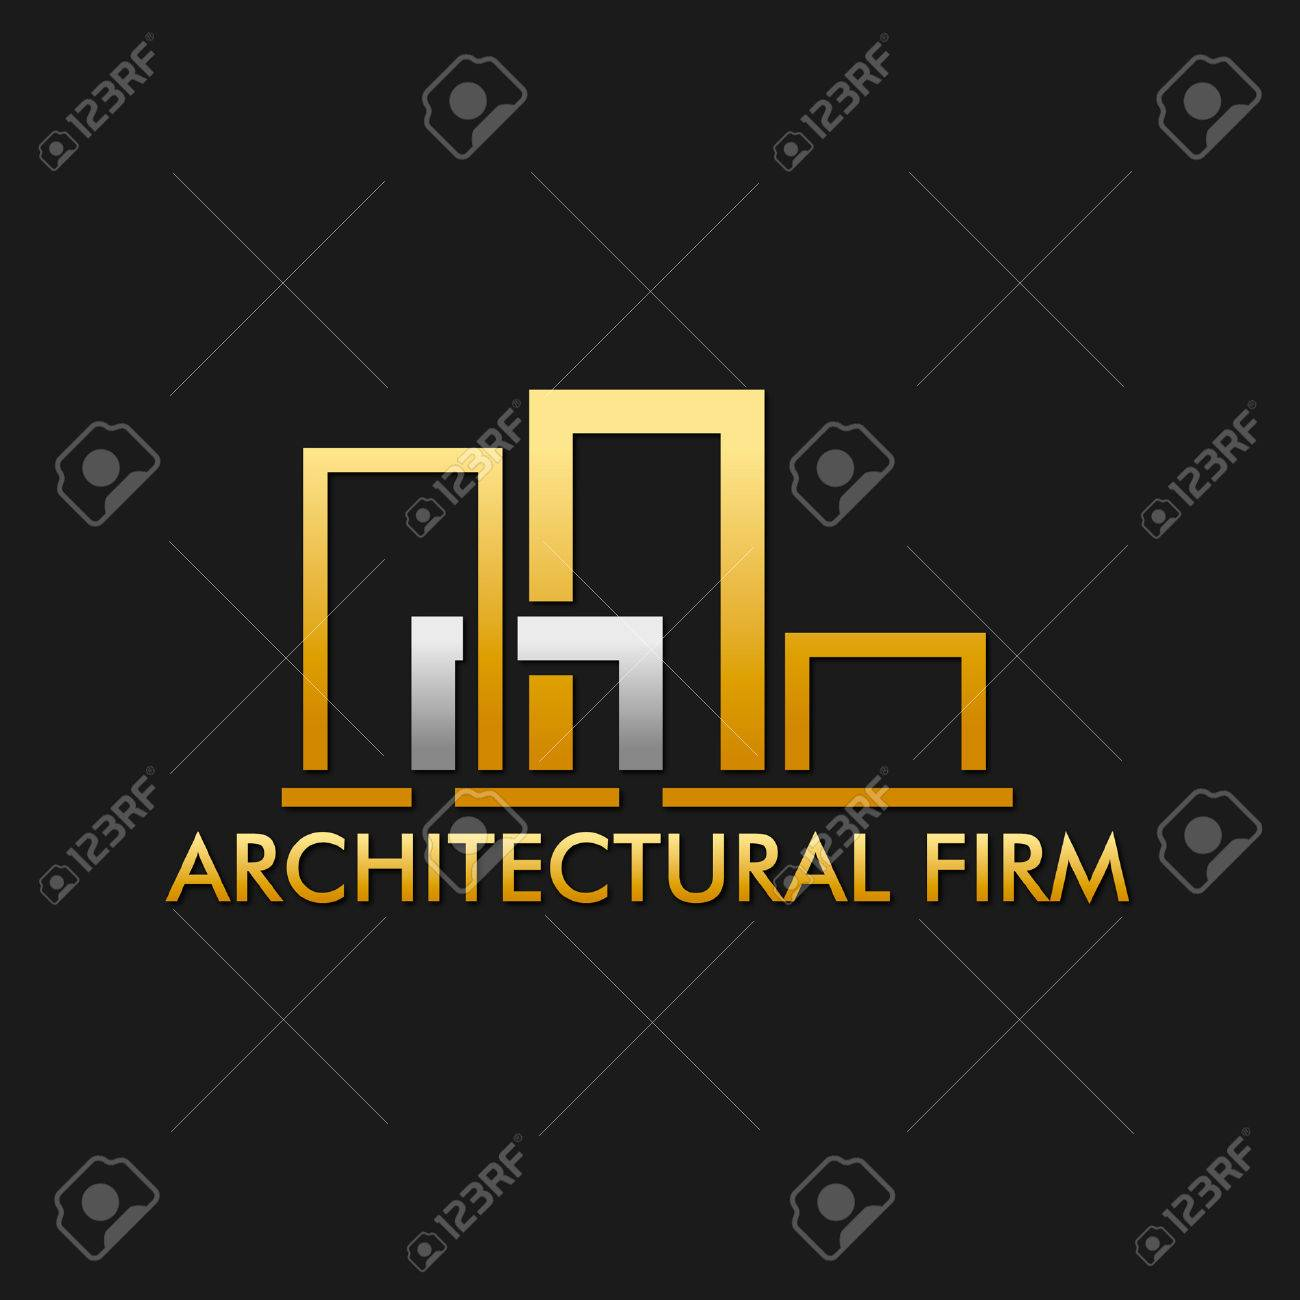 architectural design firm logo royalty free cliparts, vectors, and